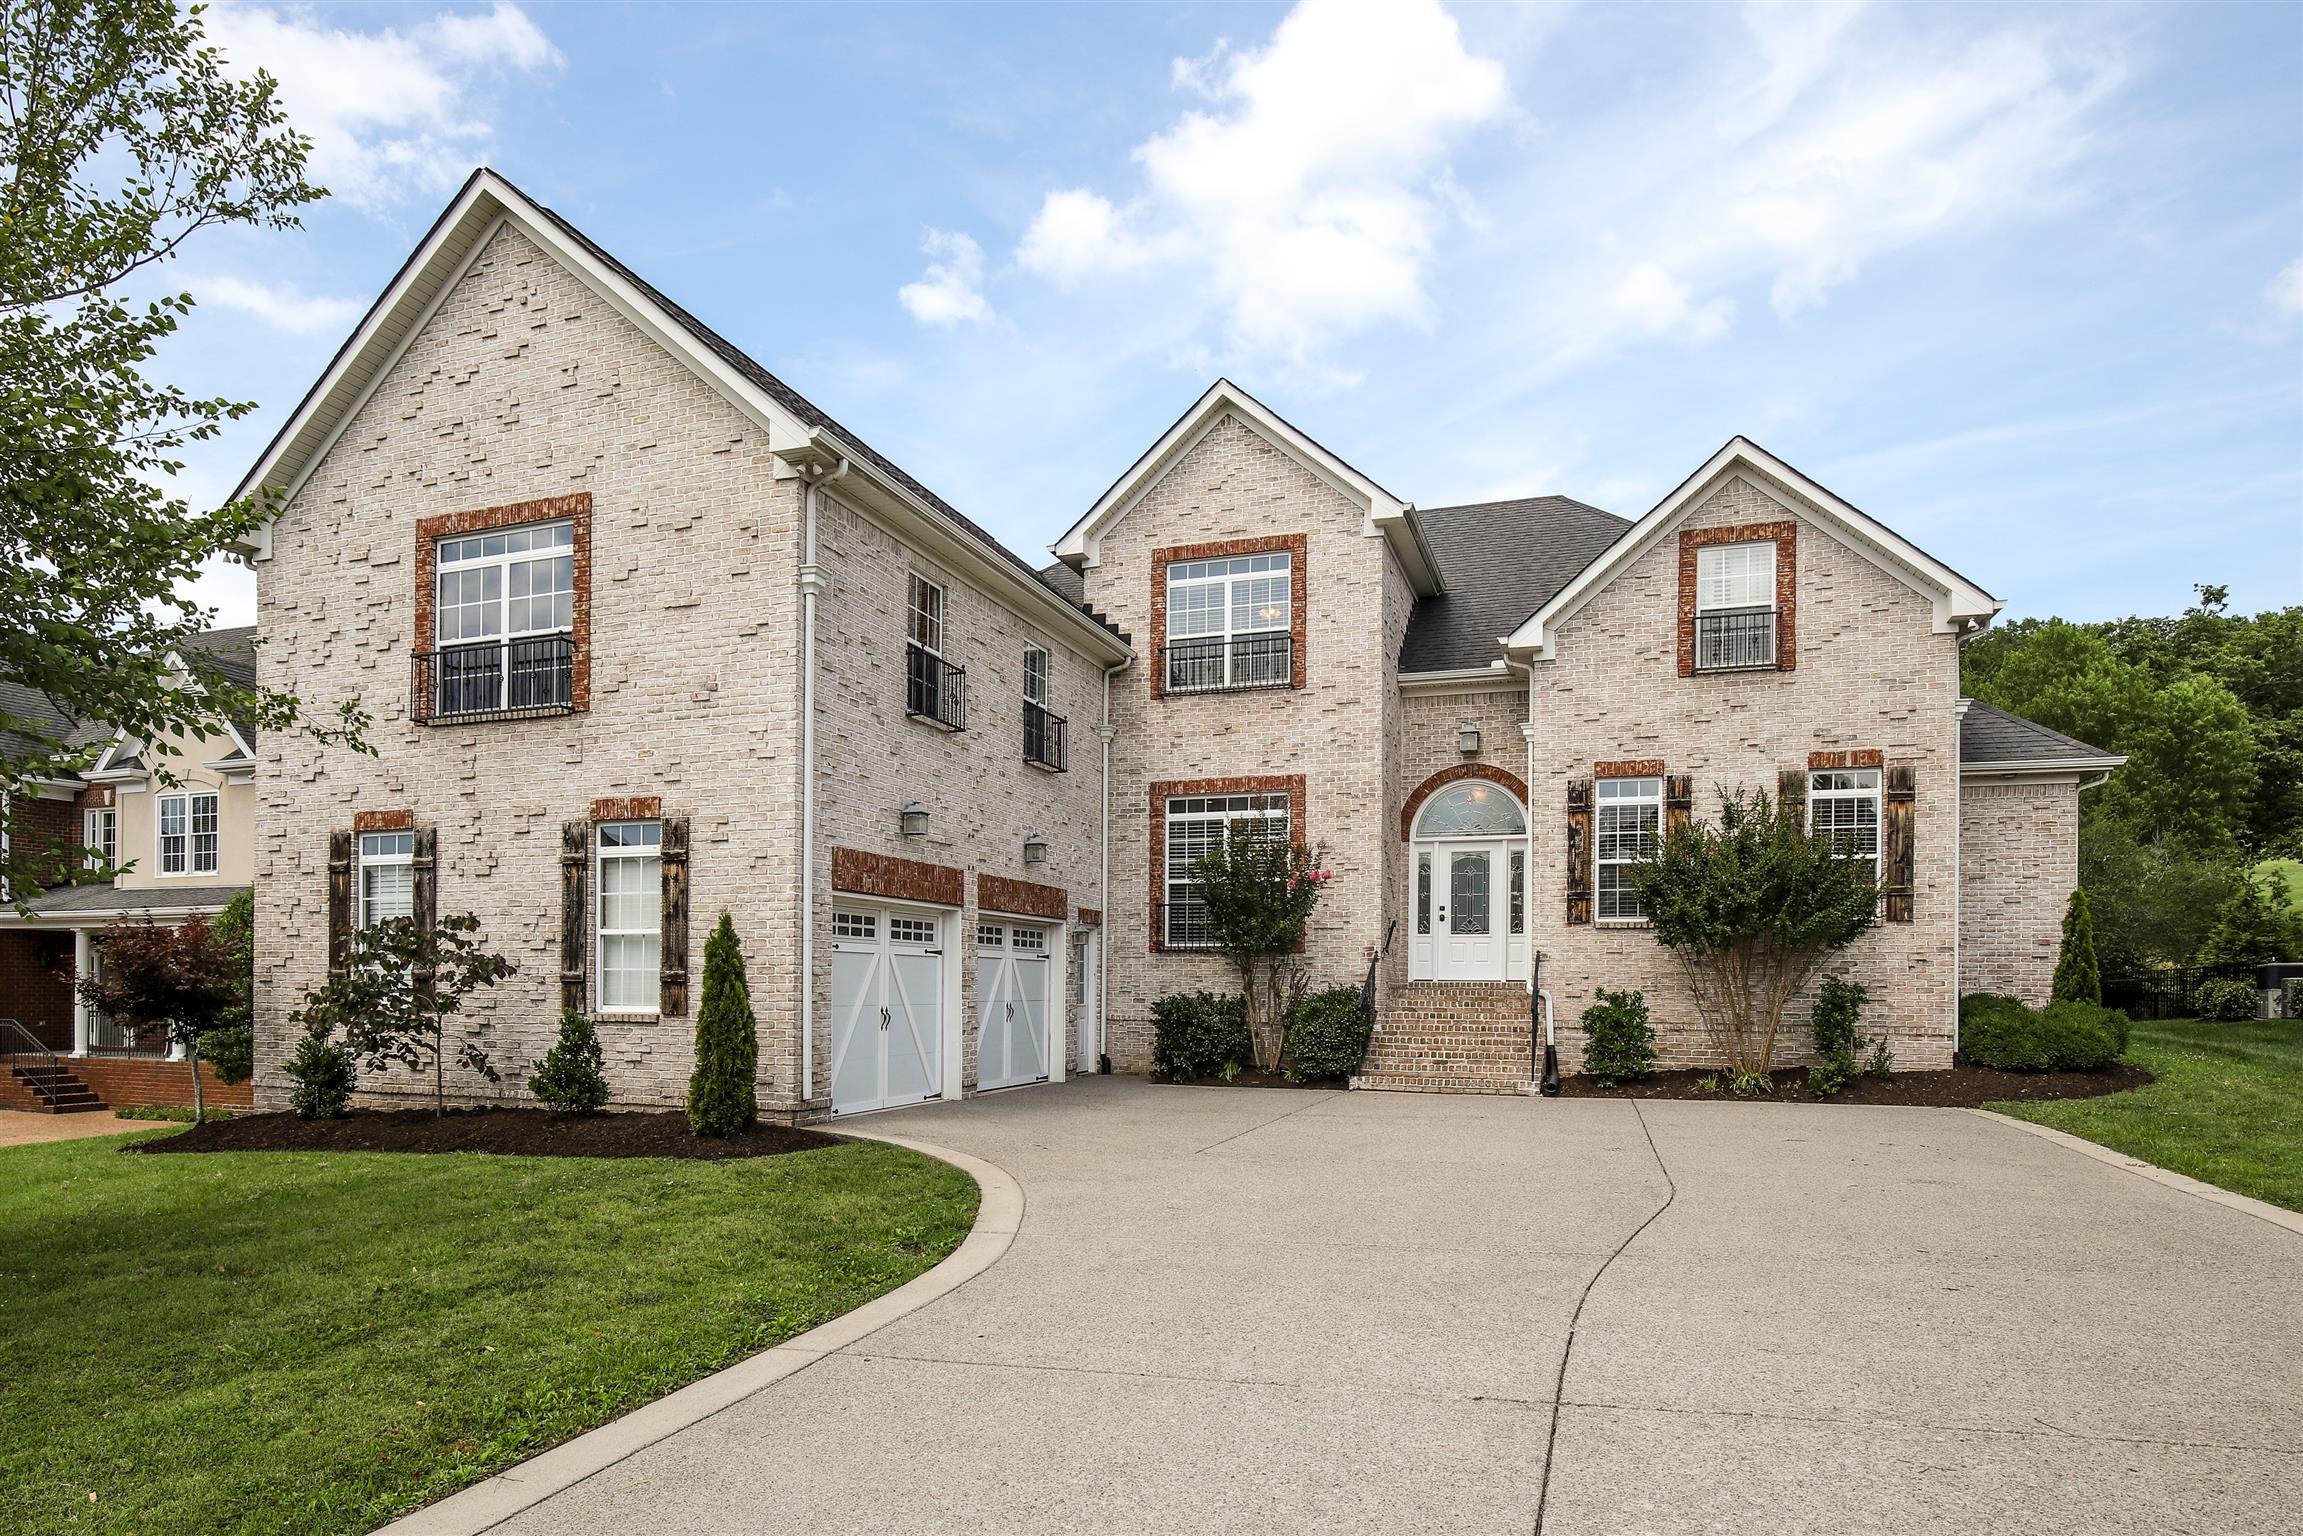 1011 Calebs Walk, Goodlettsville, TN 37072 - Goodlettsville, TN real estate listing